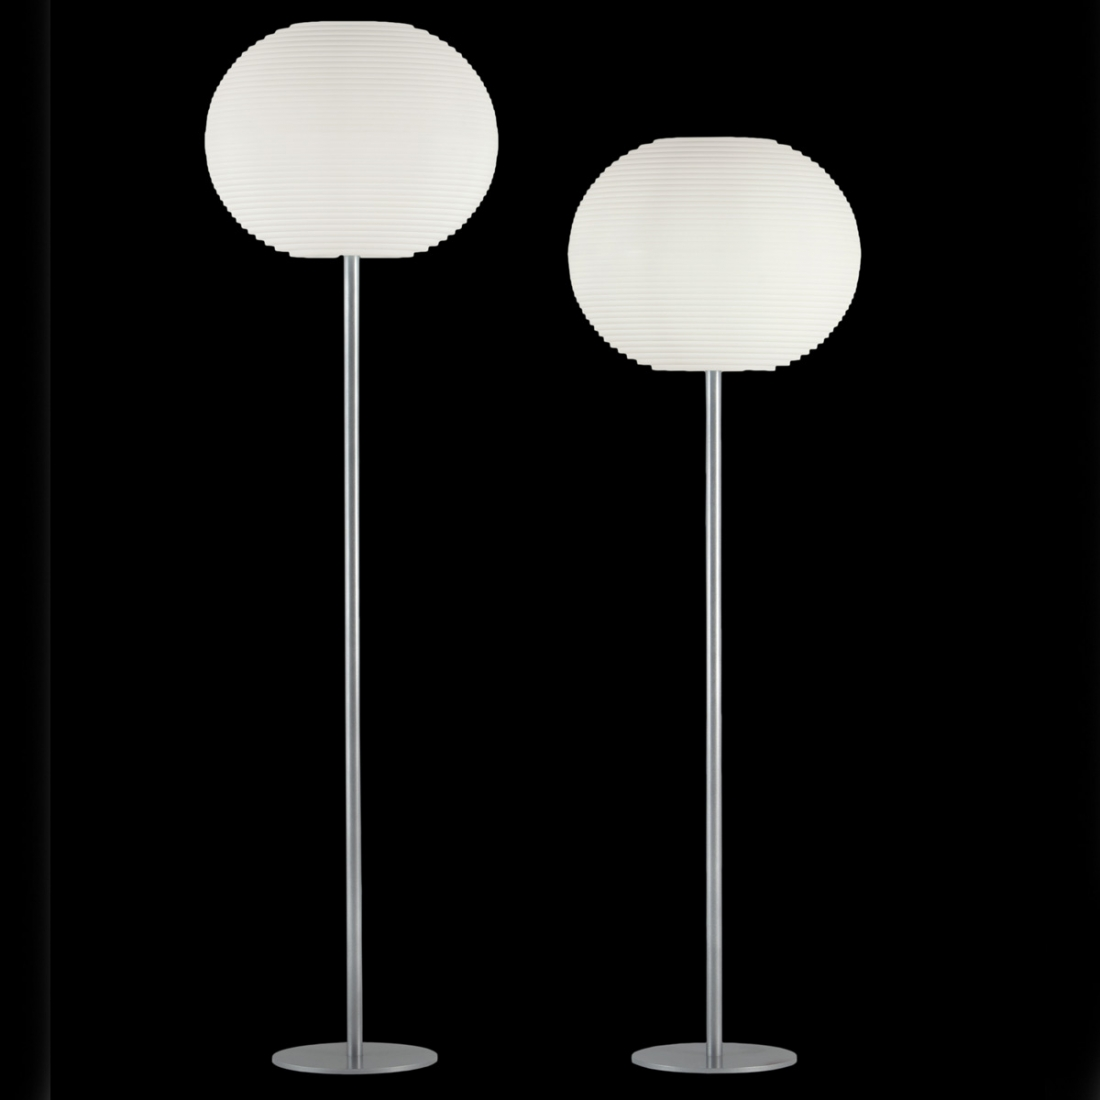 Lampadaire int rieur piantana molly slide zendart design for Lampadaire interieur design